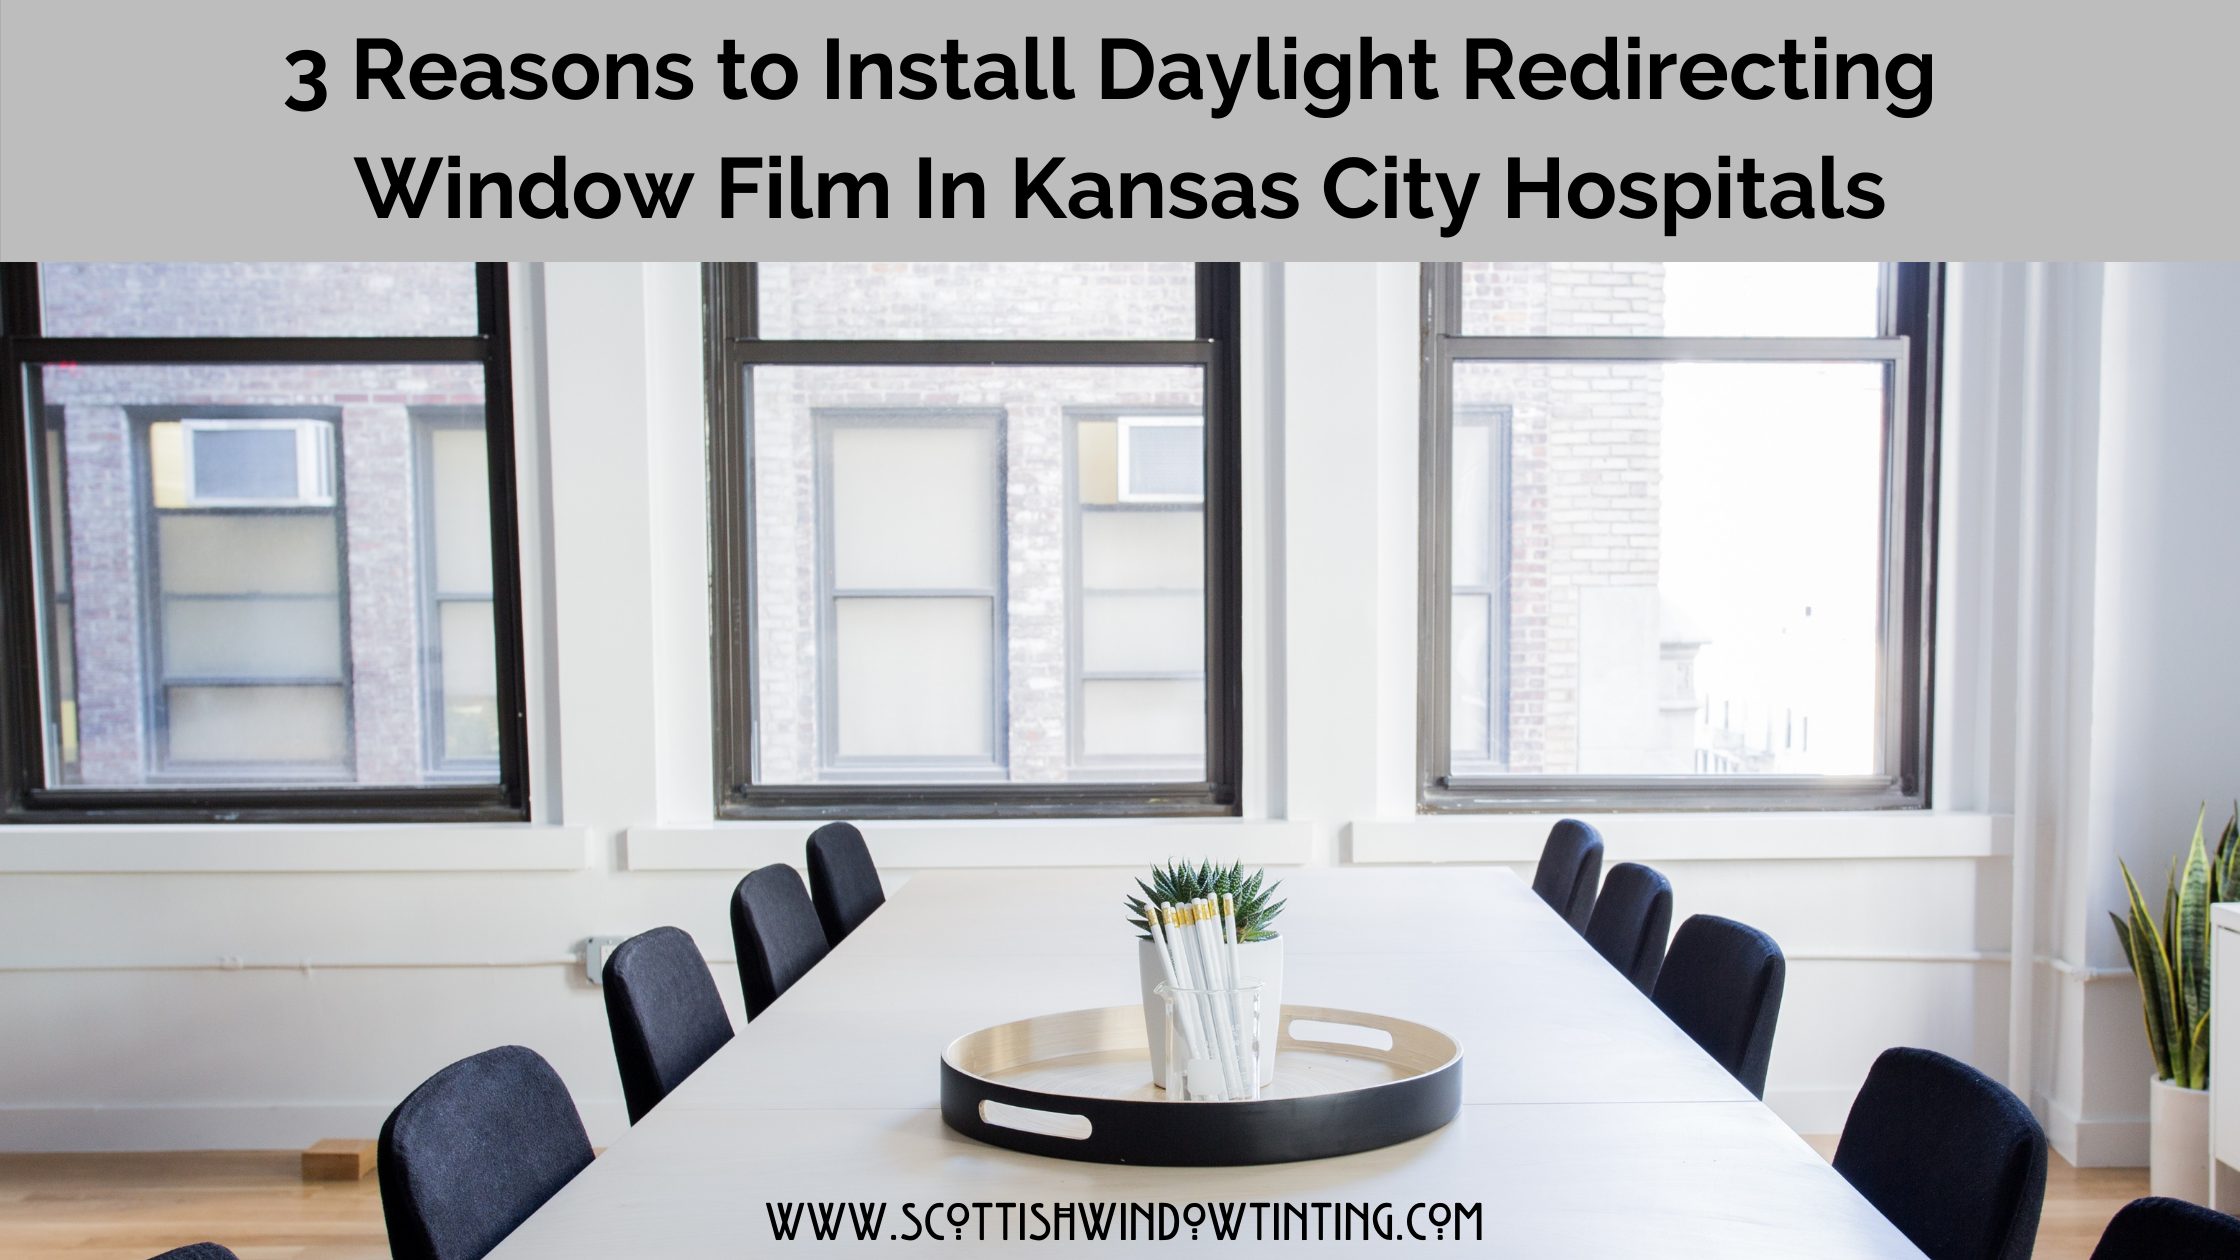 3 Reasons to Install Daylight Redirecting Window Film In Kansas City Hospitals